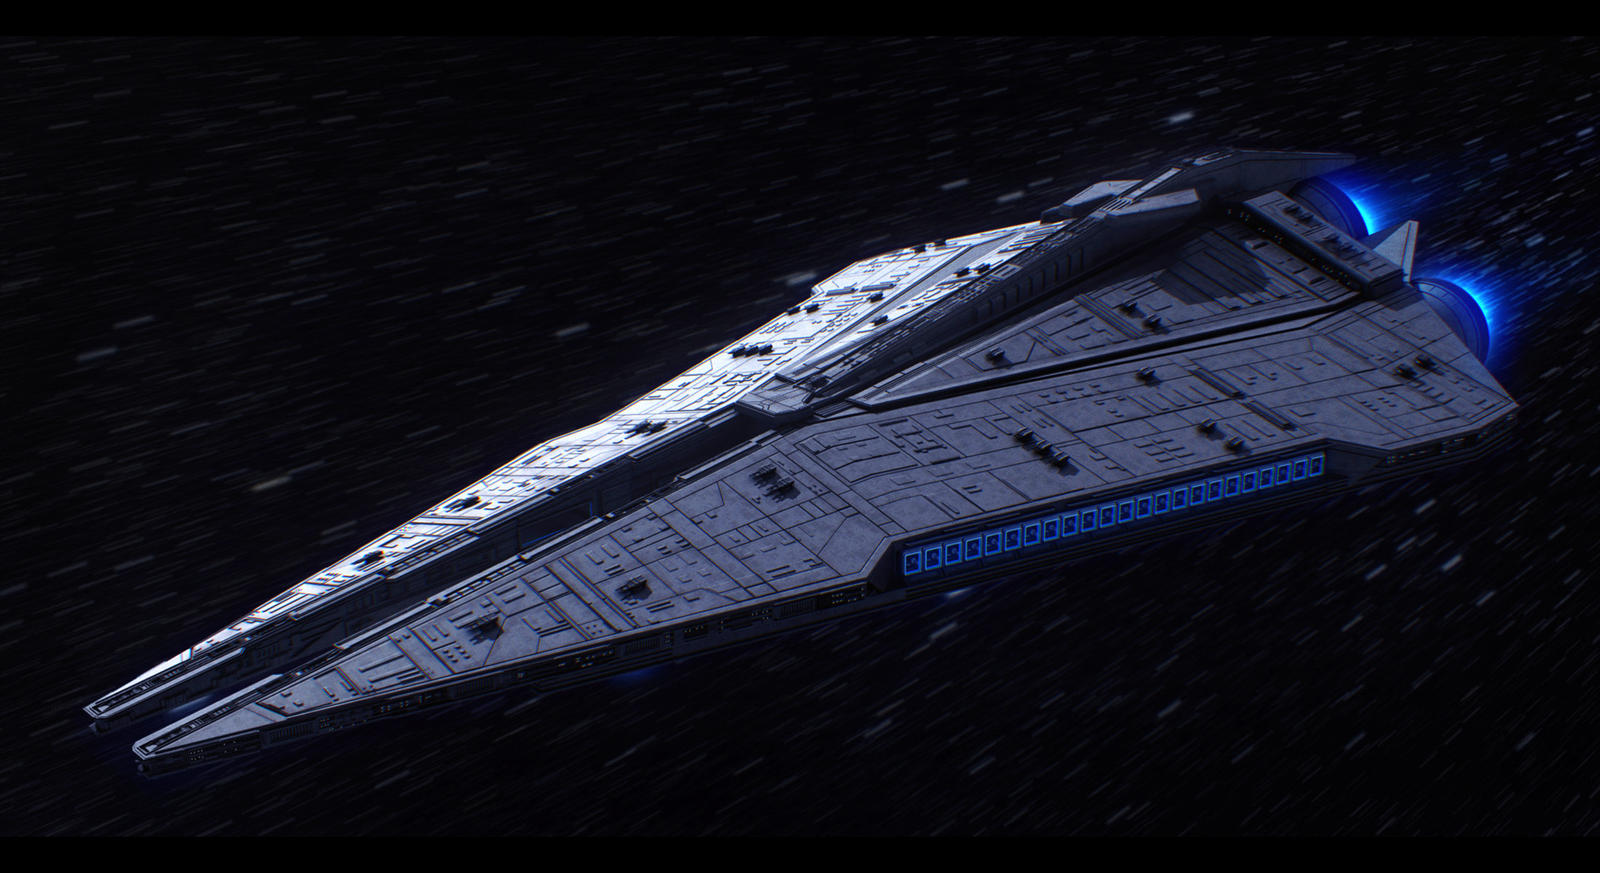 Imperial Star Destroyer By Adamkop On Deviantart